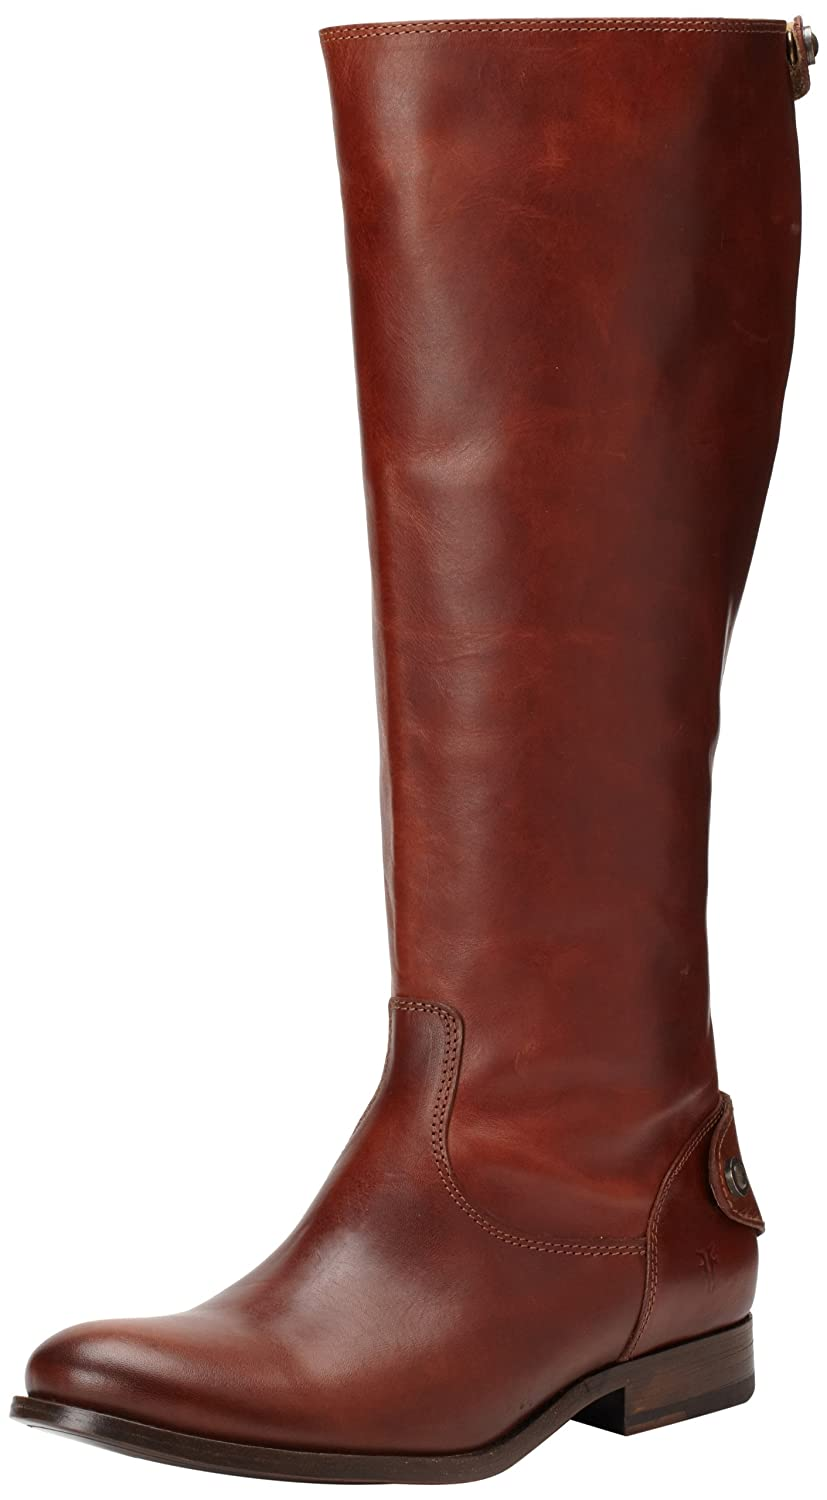 Deluxe Adult Costumes - FRYE Women's Melissa Cognac Leather Button Boots